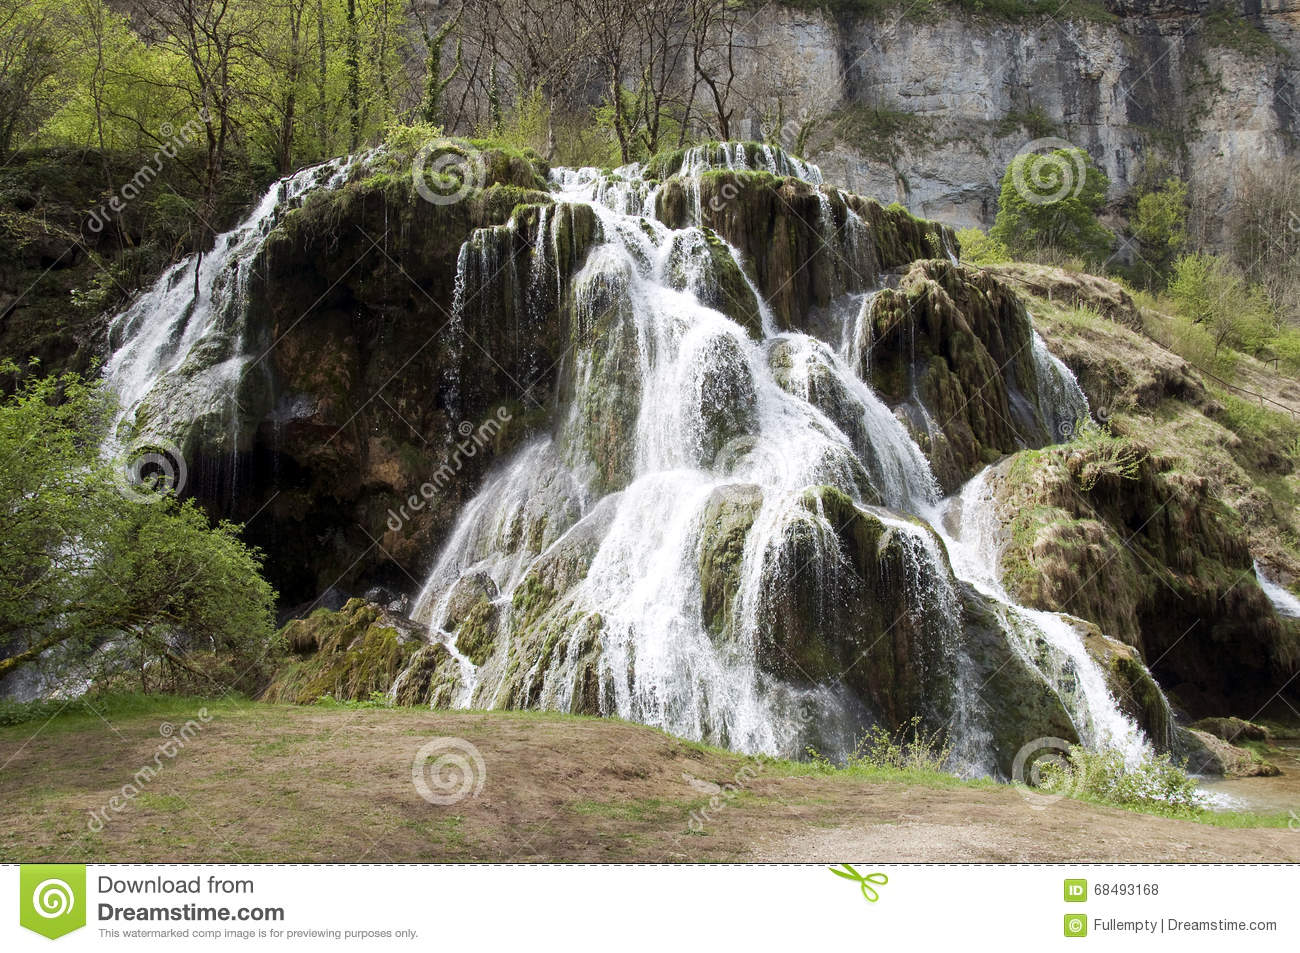 Baumes Les Messieurs waterfall in Jura, France